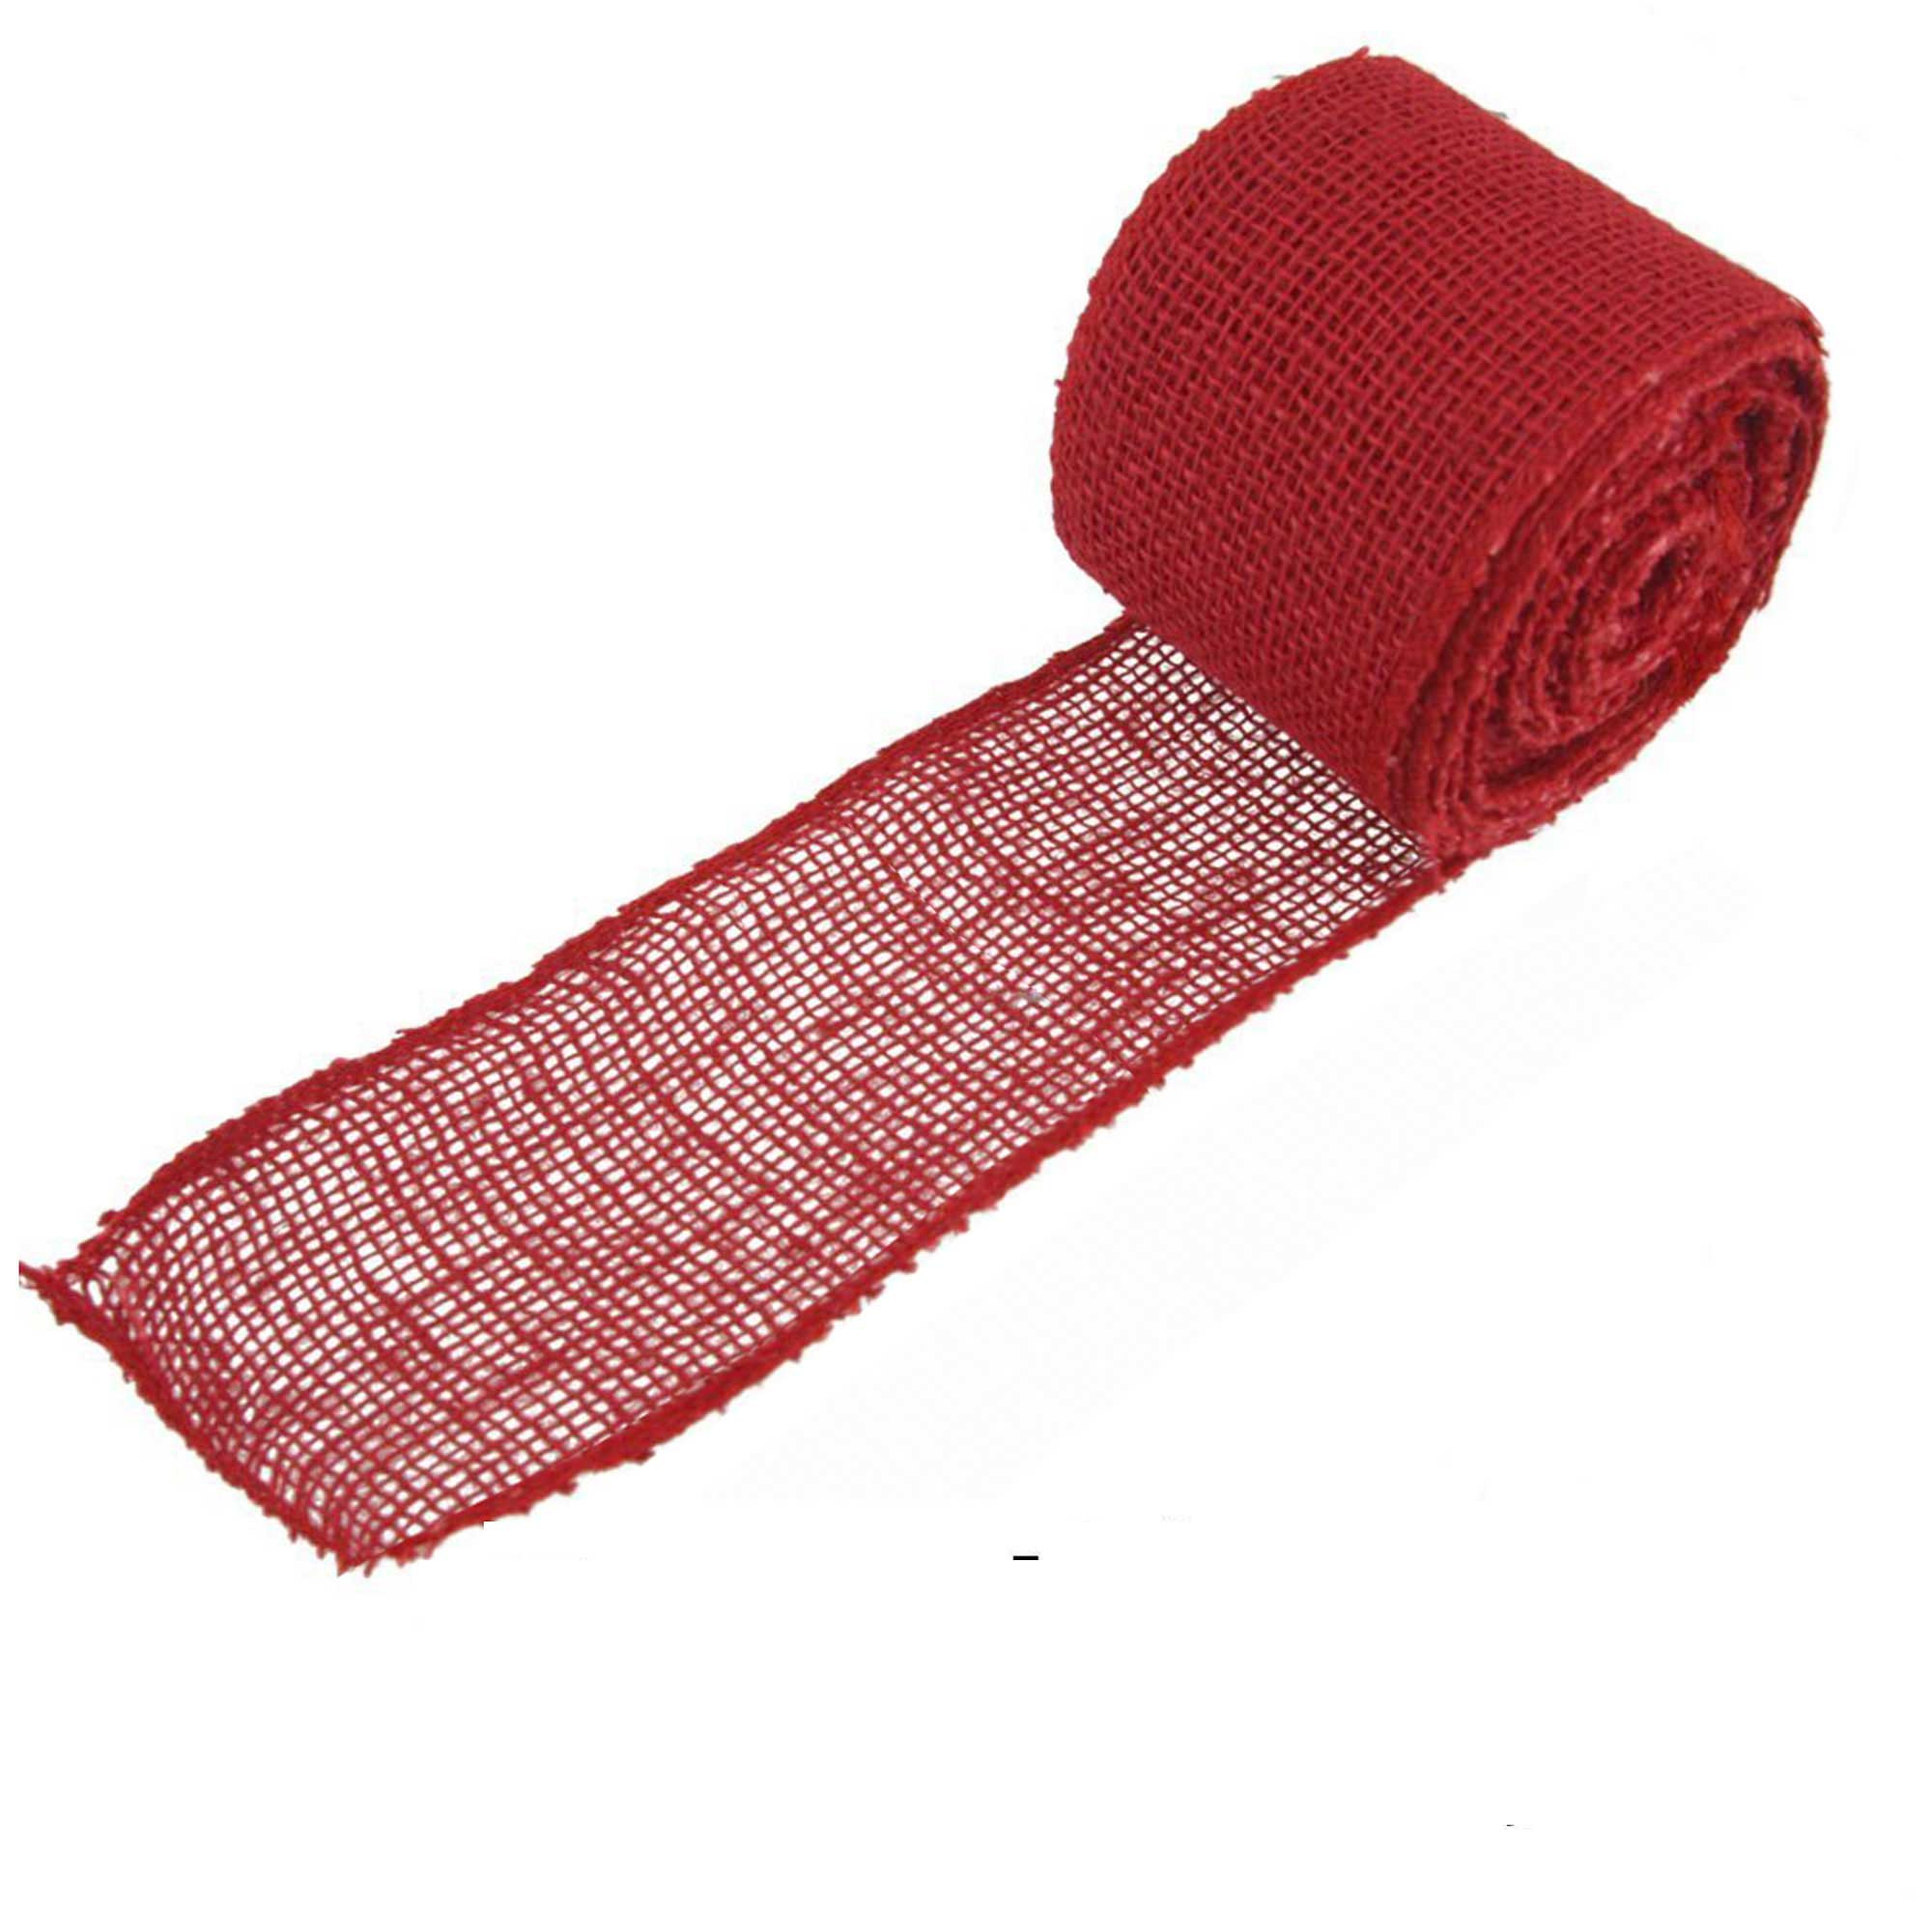 "BambooMN Brand - 3"" Inch wide Burlap Fabric Craft Ribbon - 10 Yards - Hemp Jute - Cranberry"